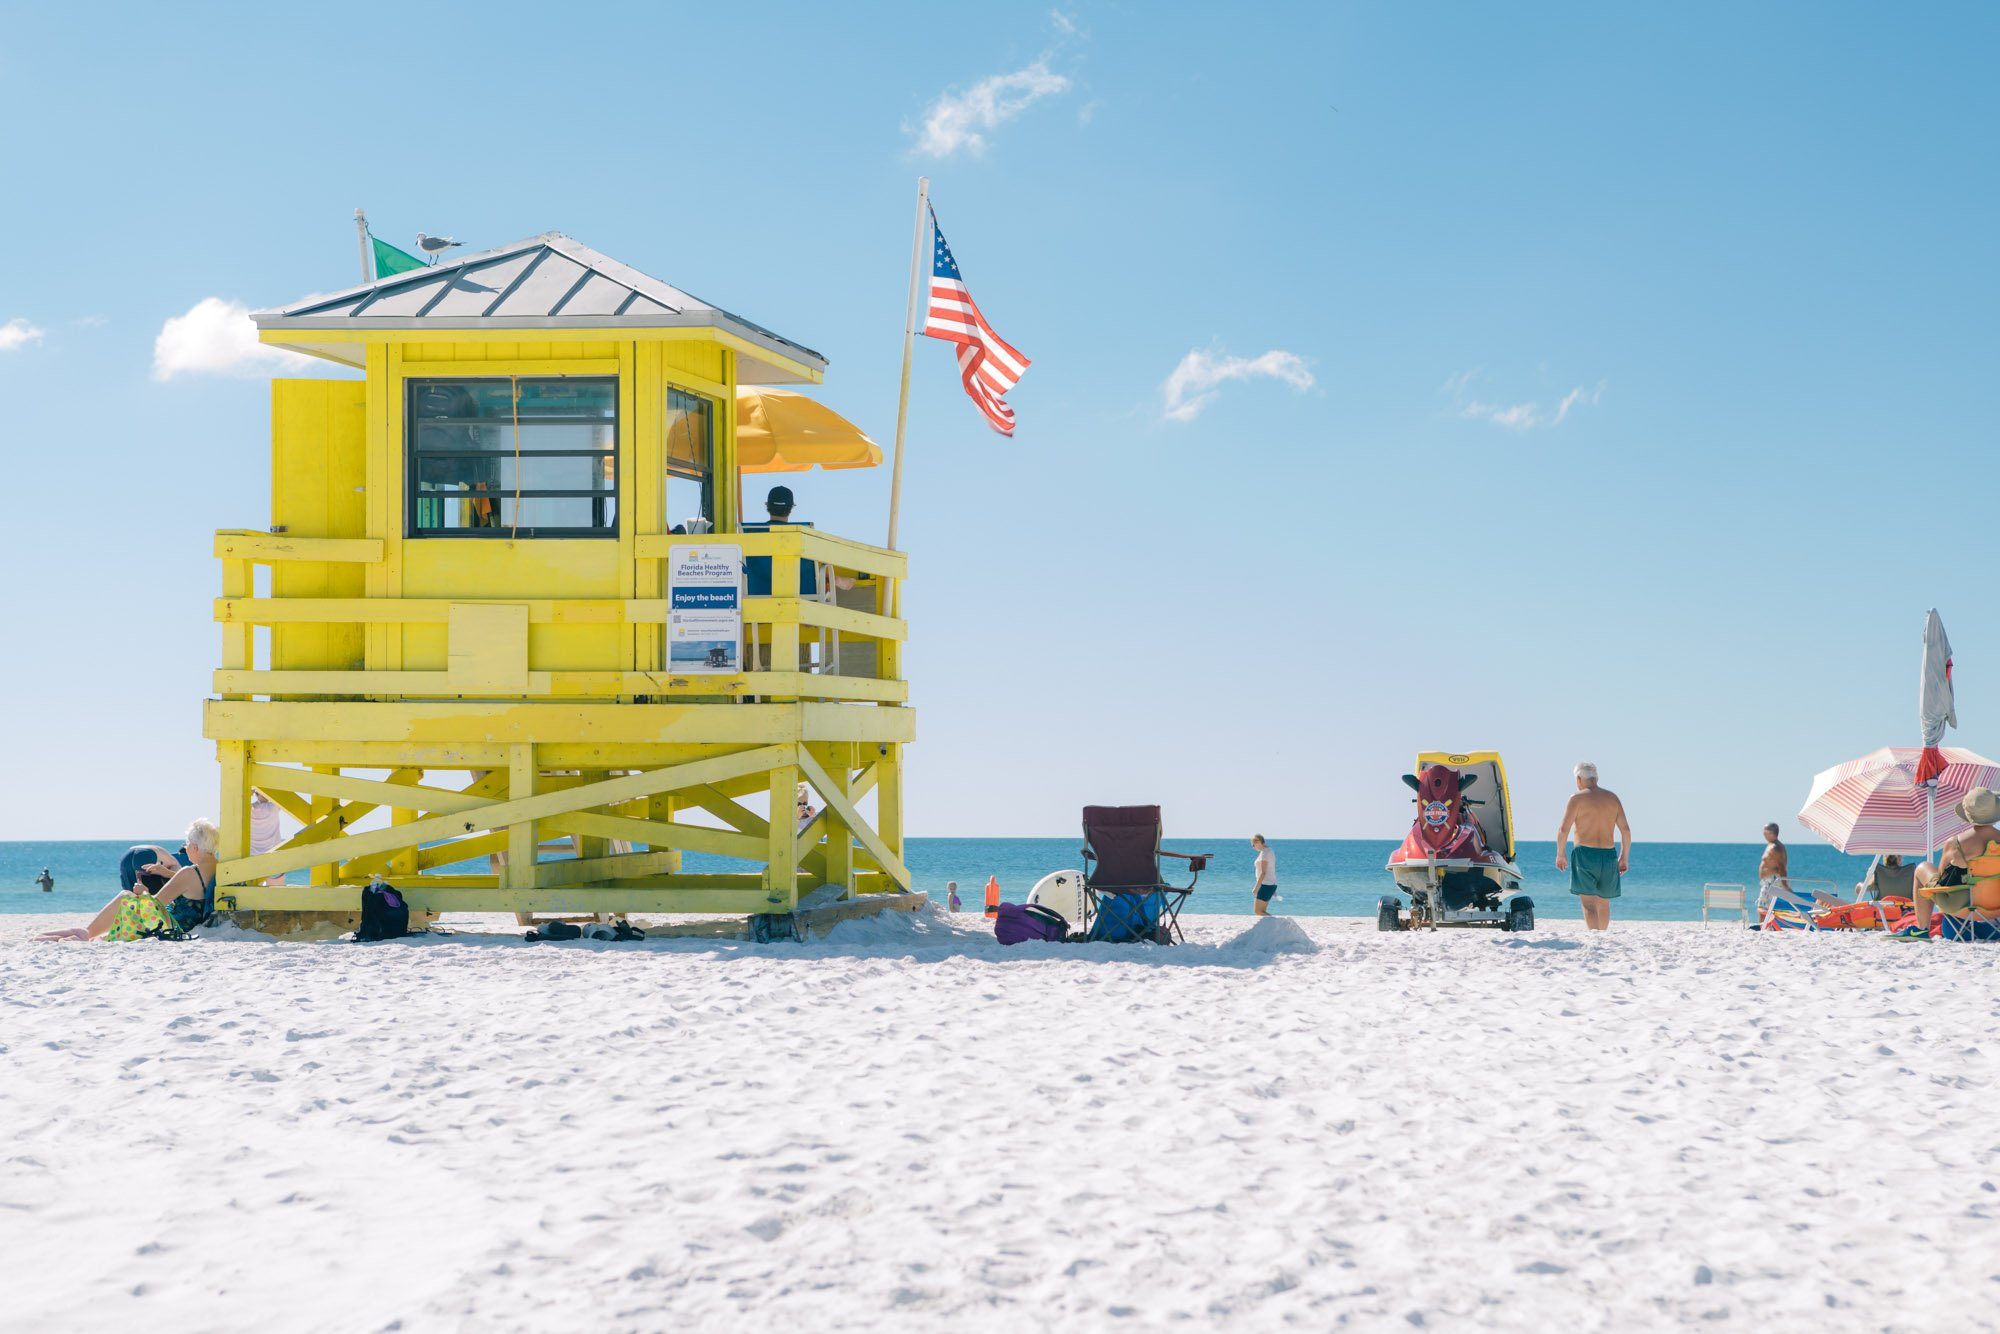 Siesta Key Beach Lifeguard Hut